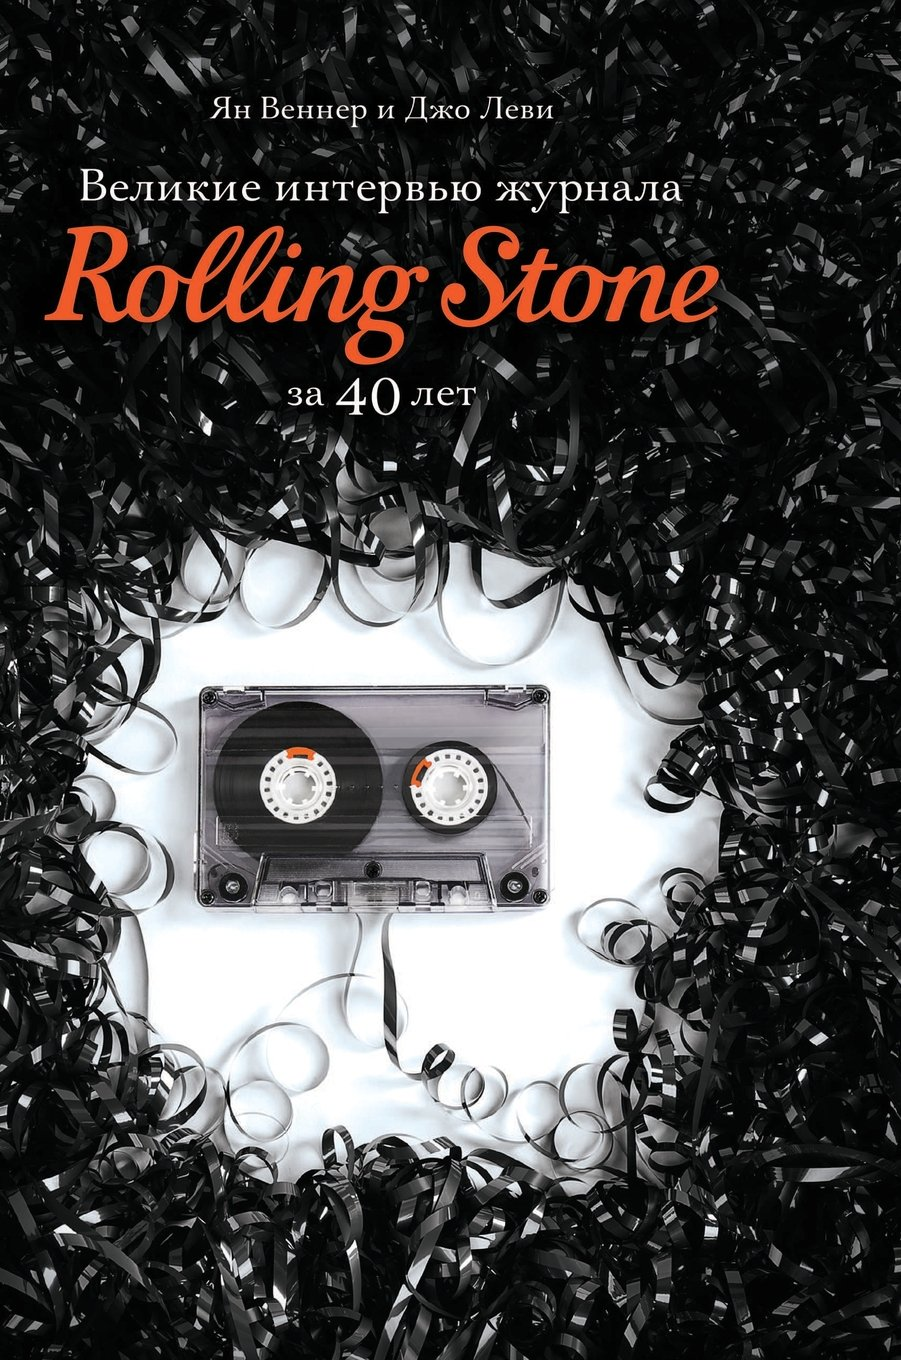 Read Online Great interview with Rolling Stone magazine in 40 years (Russian Edition) ebook